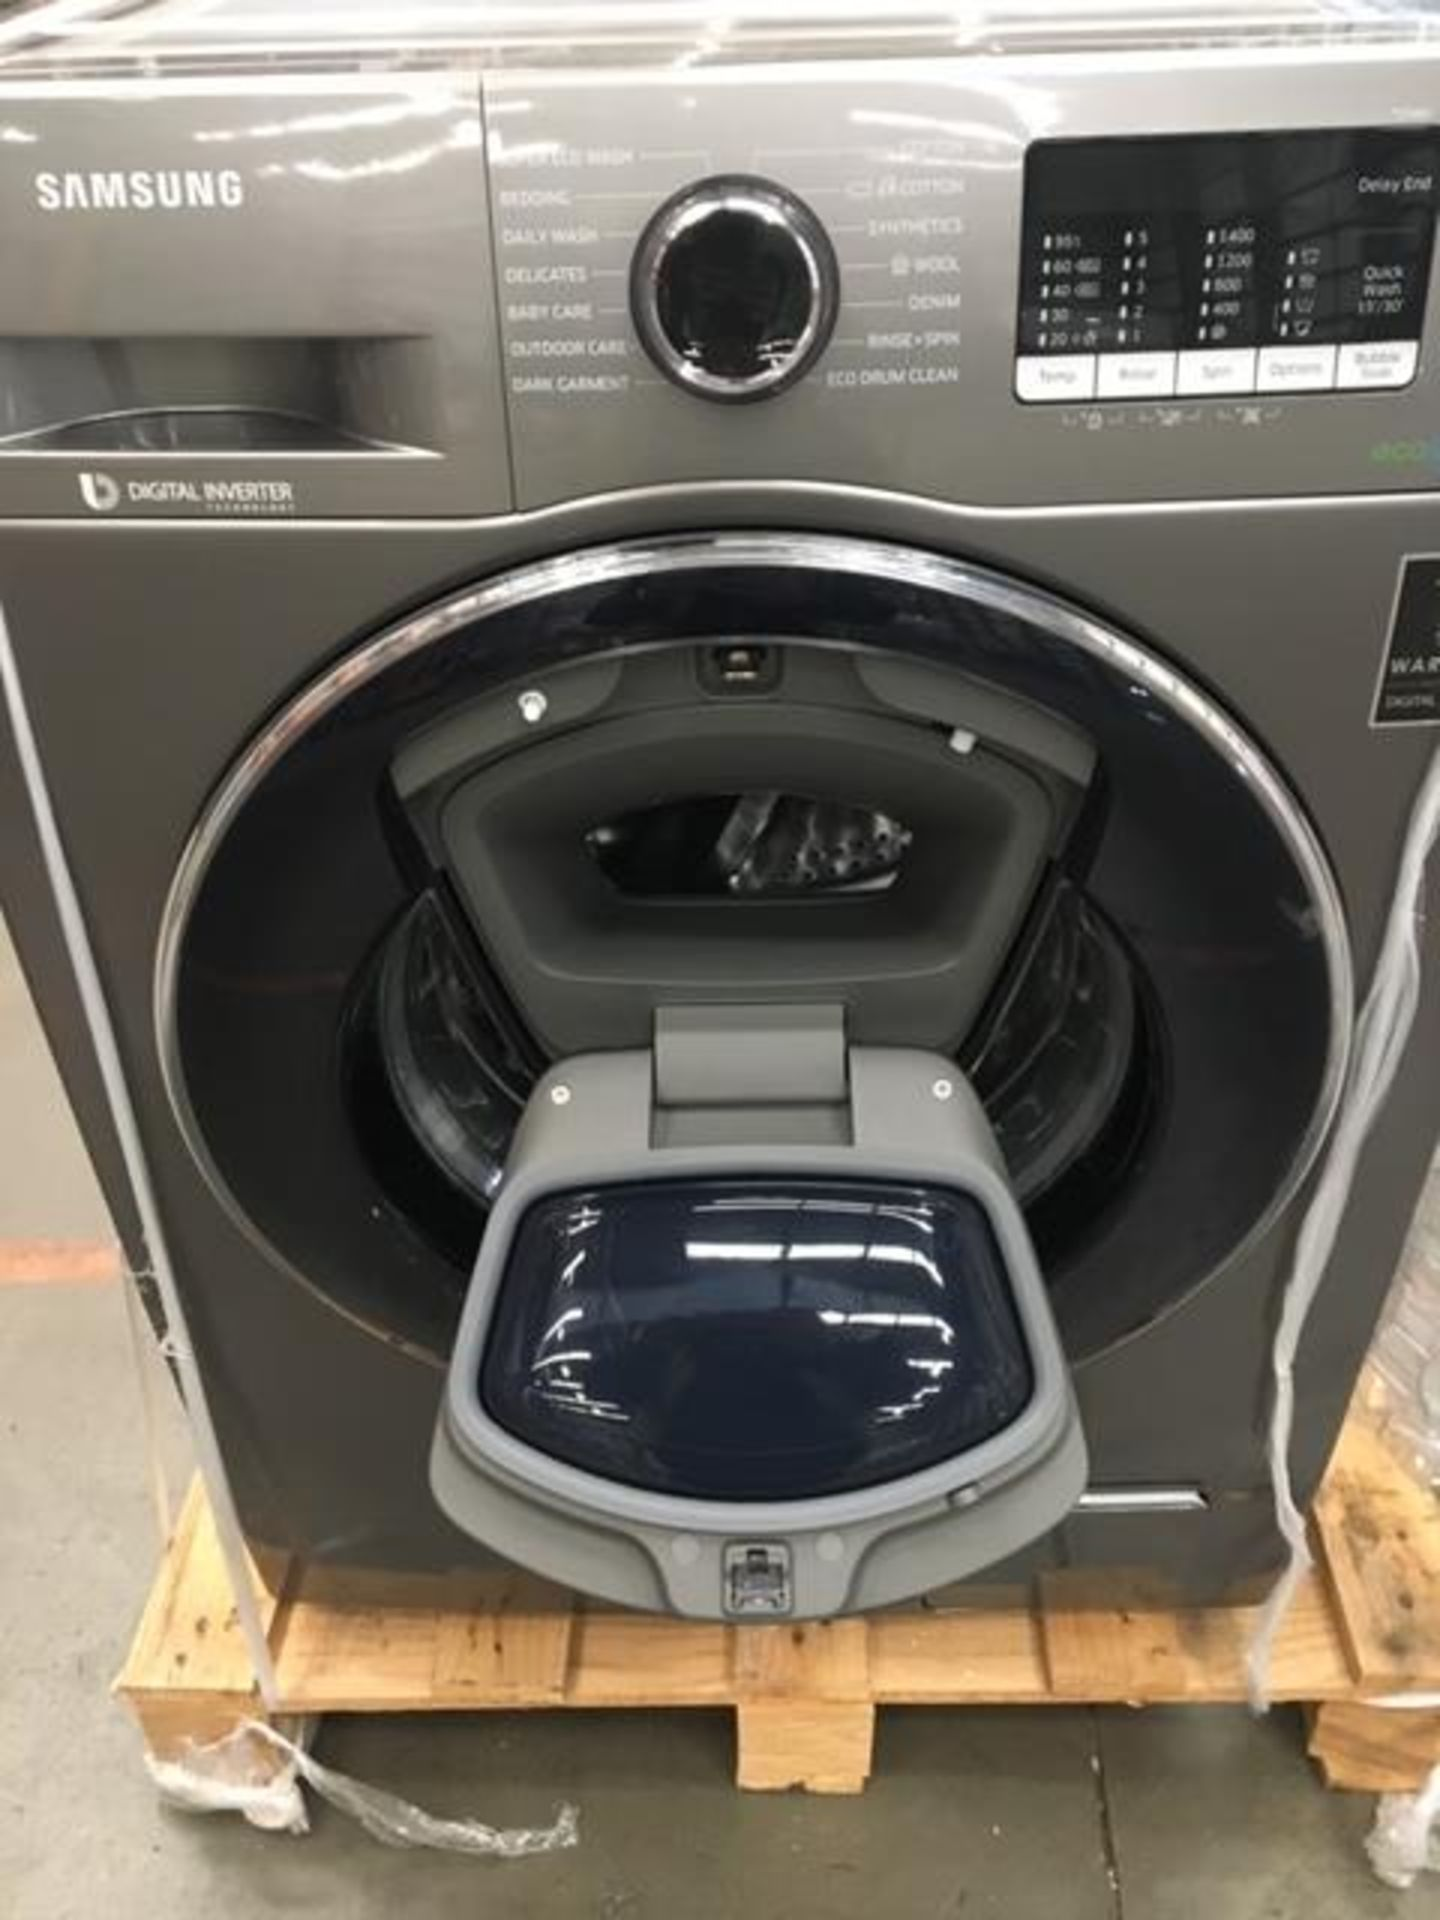 Pallet of 2 Samsung Premium Washing machines. Total Latest selling price £778* - Image 5 of 7